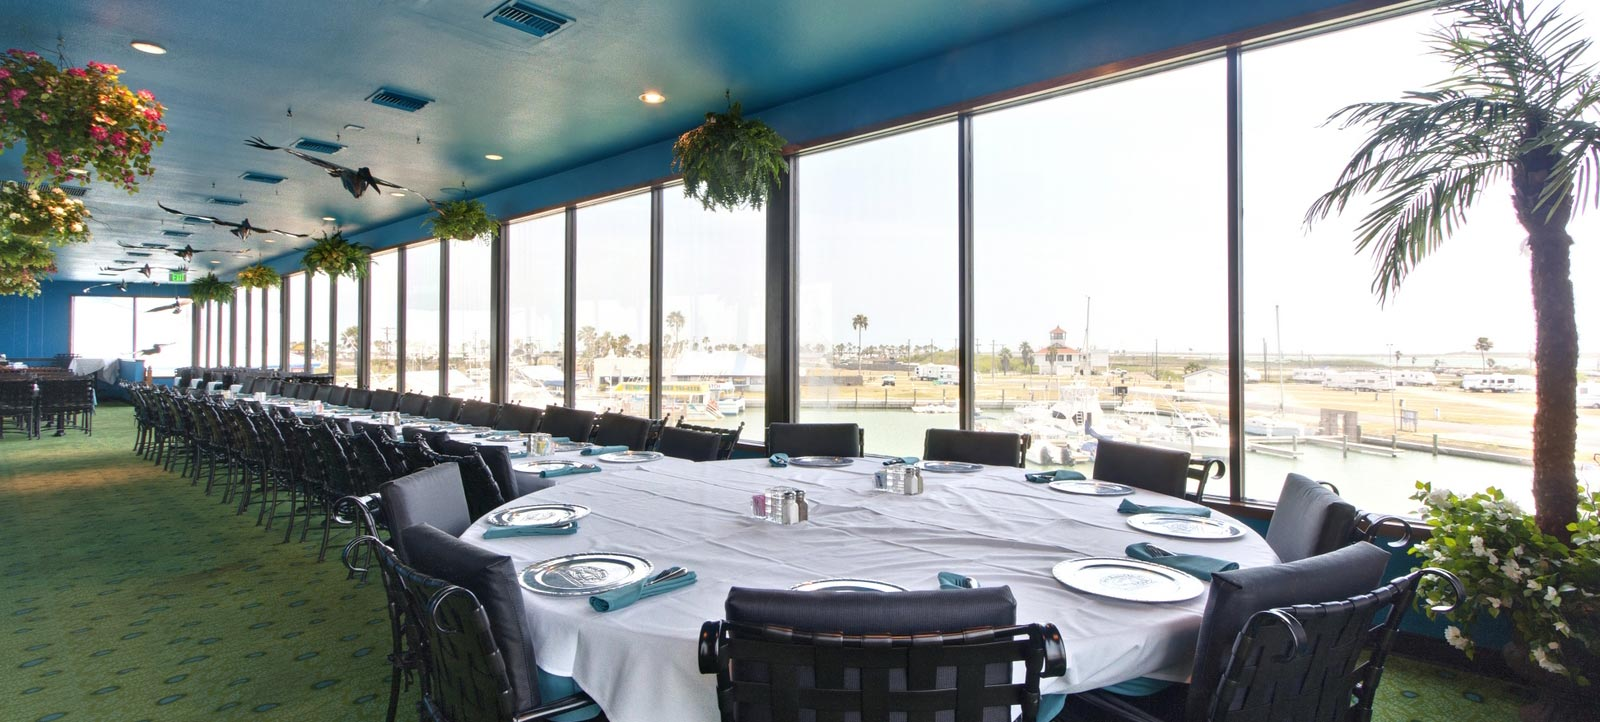 Host your next banquet or meeting at Sea Ranch Restaurant!